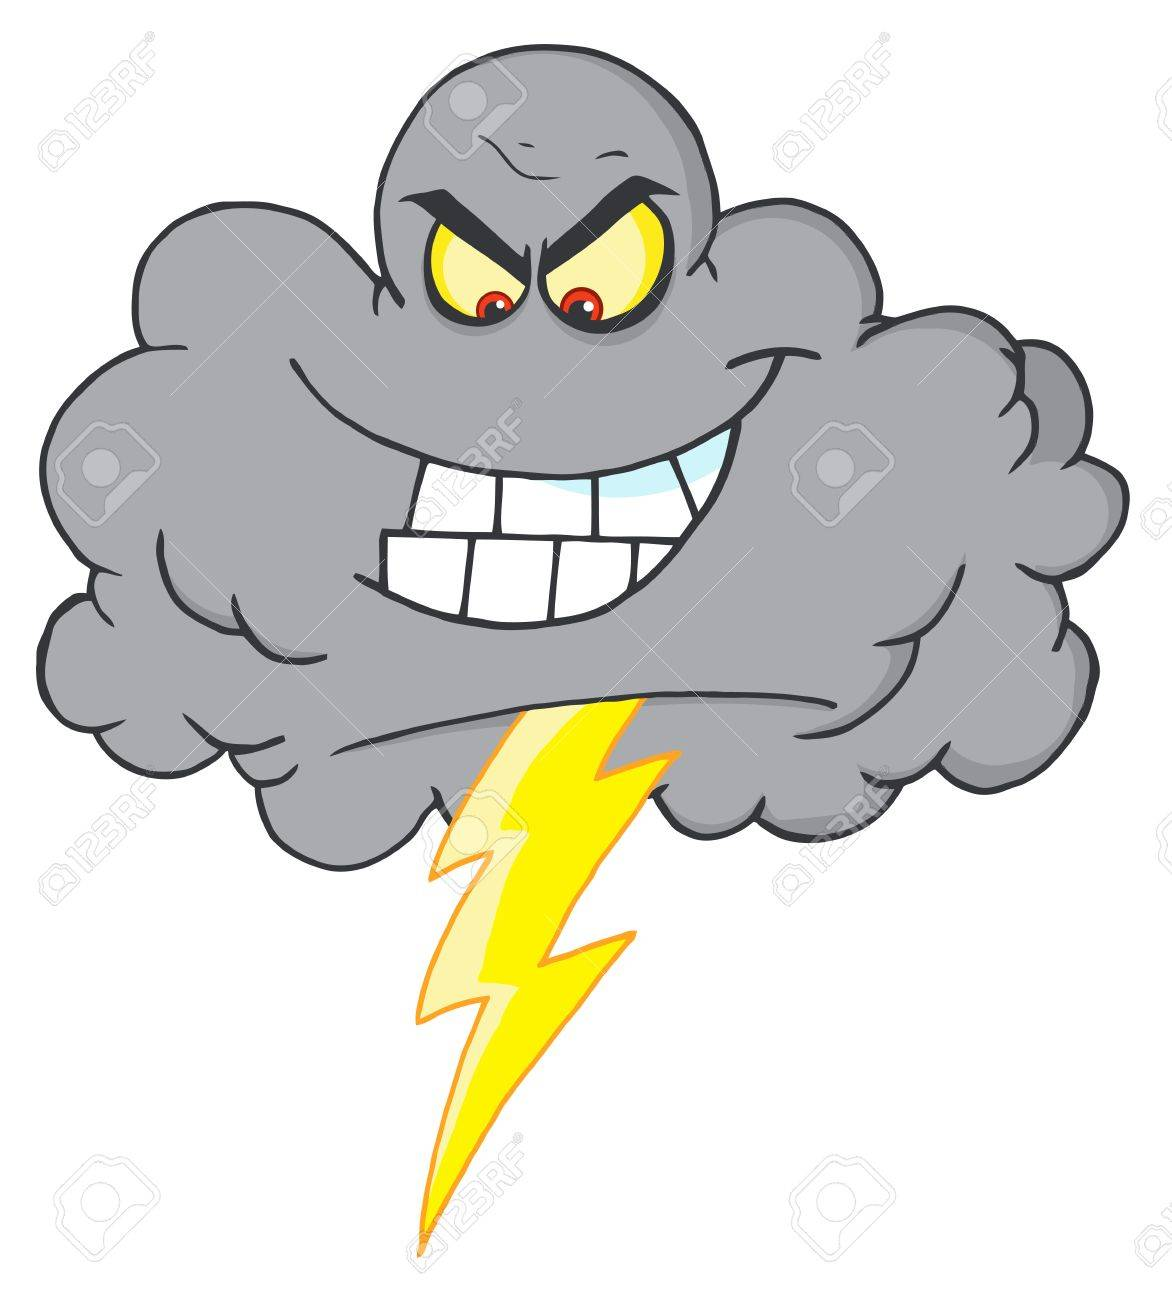 storm cloud with thunderbolt royalty free cliparts vectors and rh 123rf com storm cloud clipart free storm cloud pictures clipart